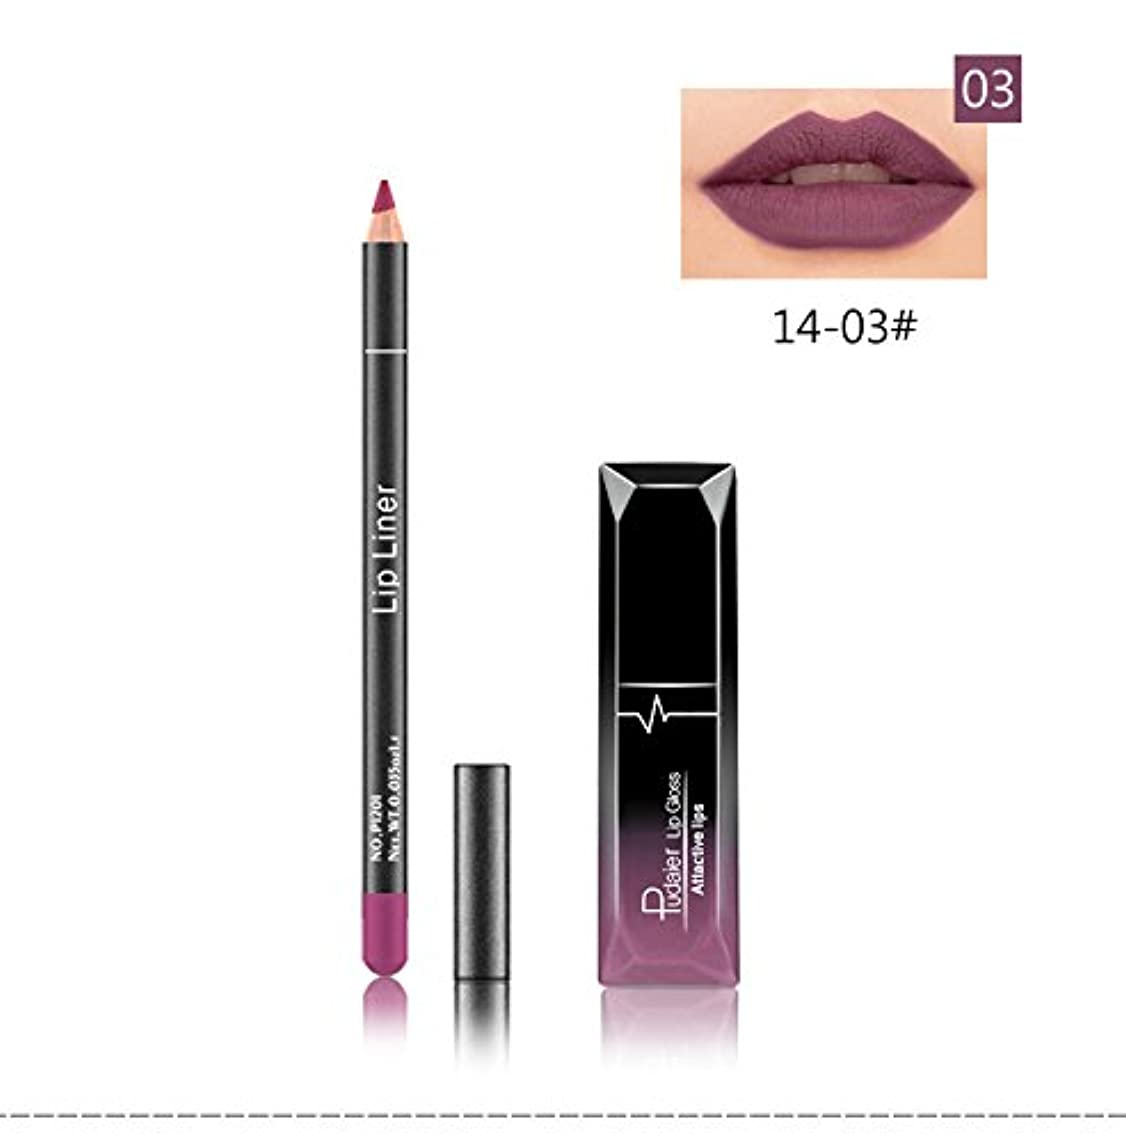 機知に富んだ高いポルトガル語(03) Pudaier 1pc Matte Liquid Lipstick Cosmetic Lip Kit+ 1 Pc Nude Lip Liner Pencil MakeUp Set Waterproof Long Lasting Lipstick Gfit